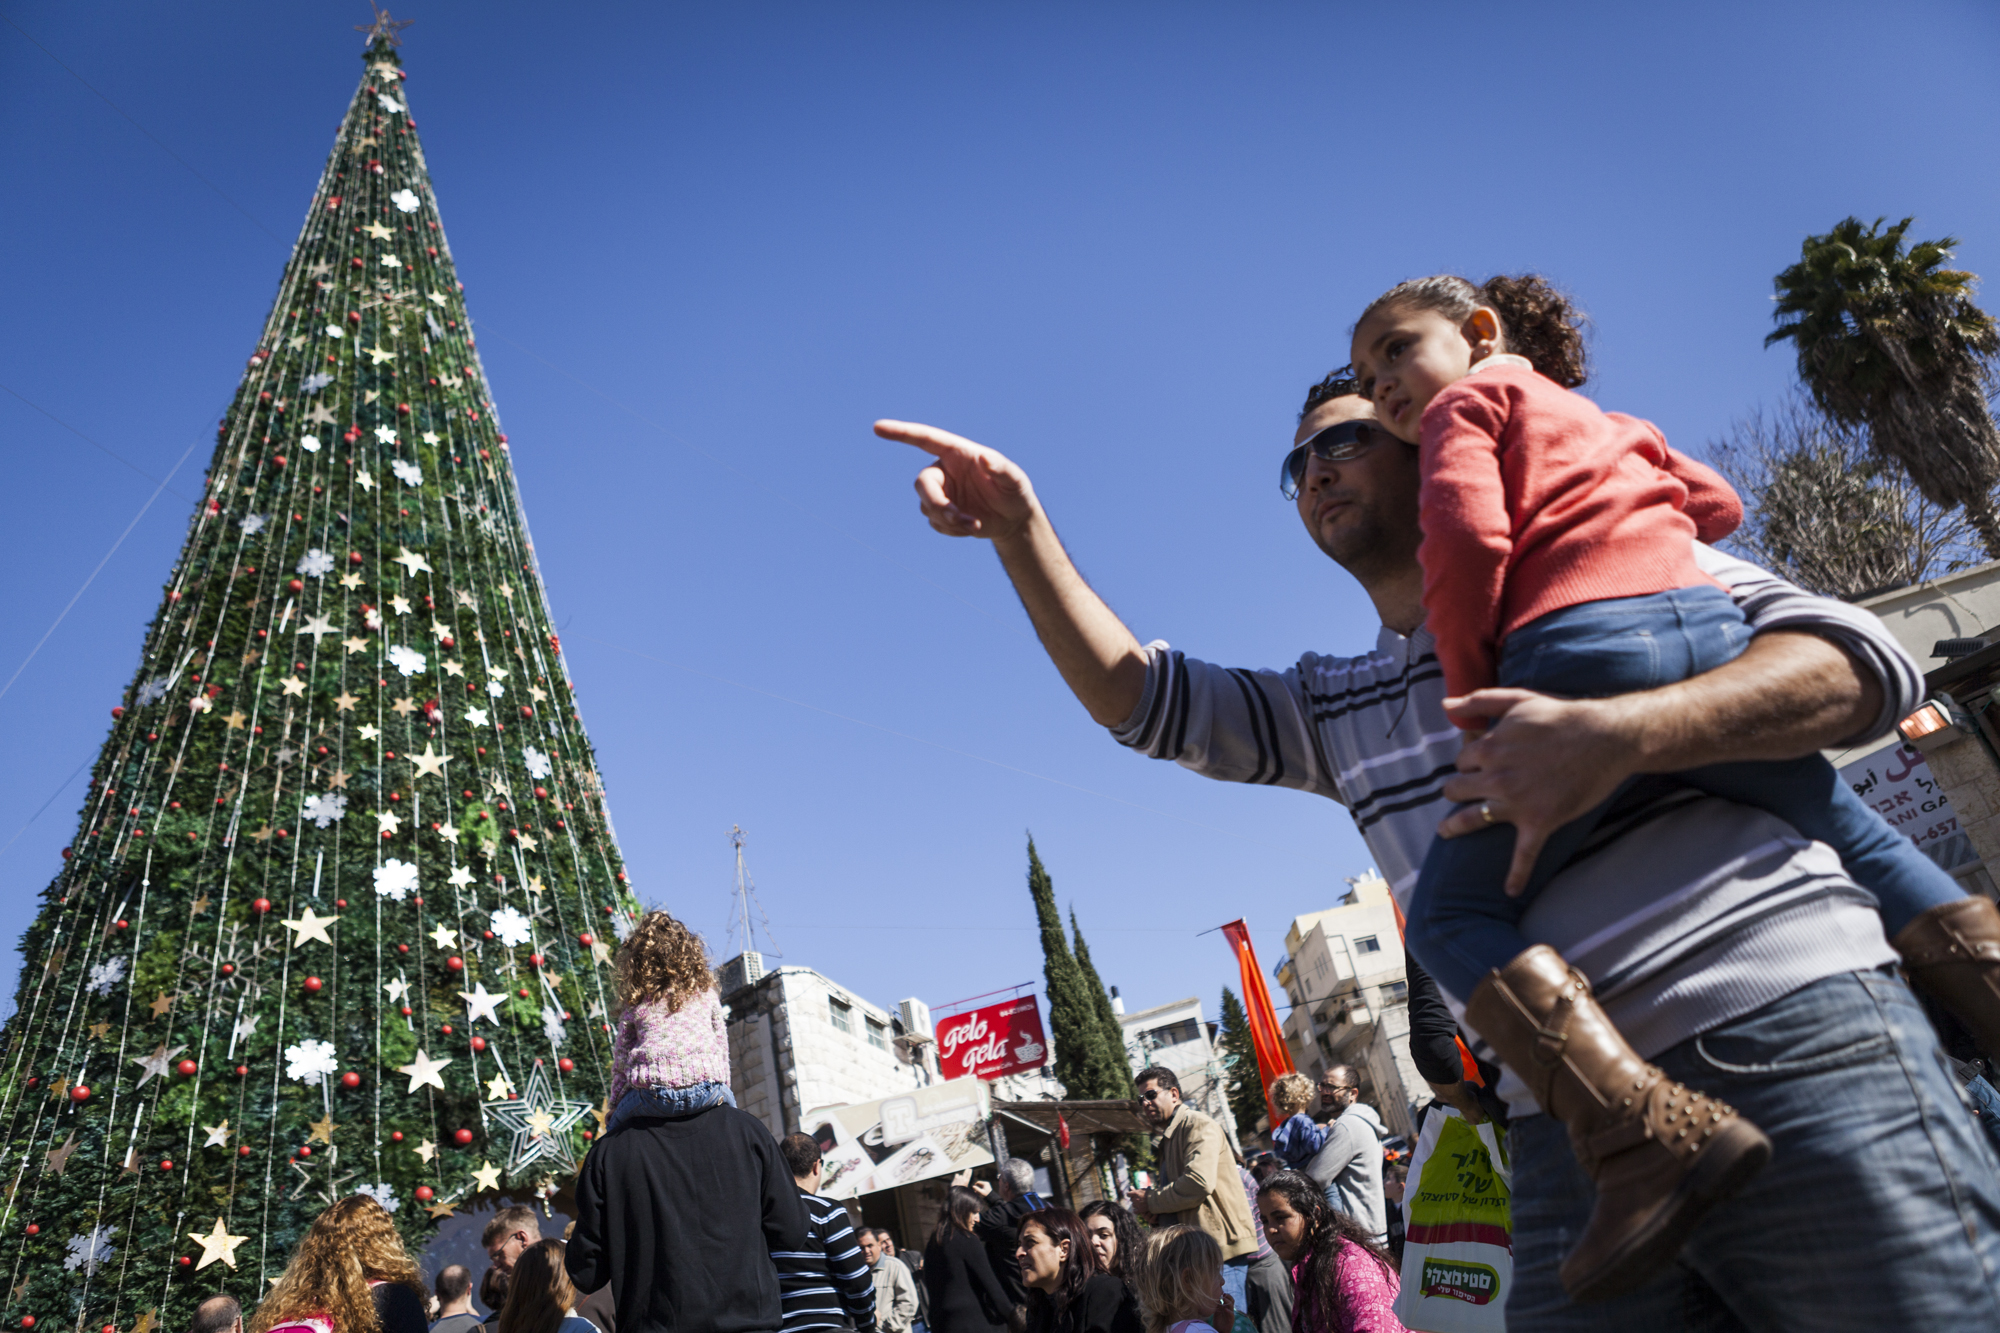 christmas in the galilee town of nazareth photo by itay cohenflash90